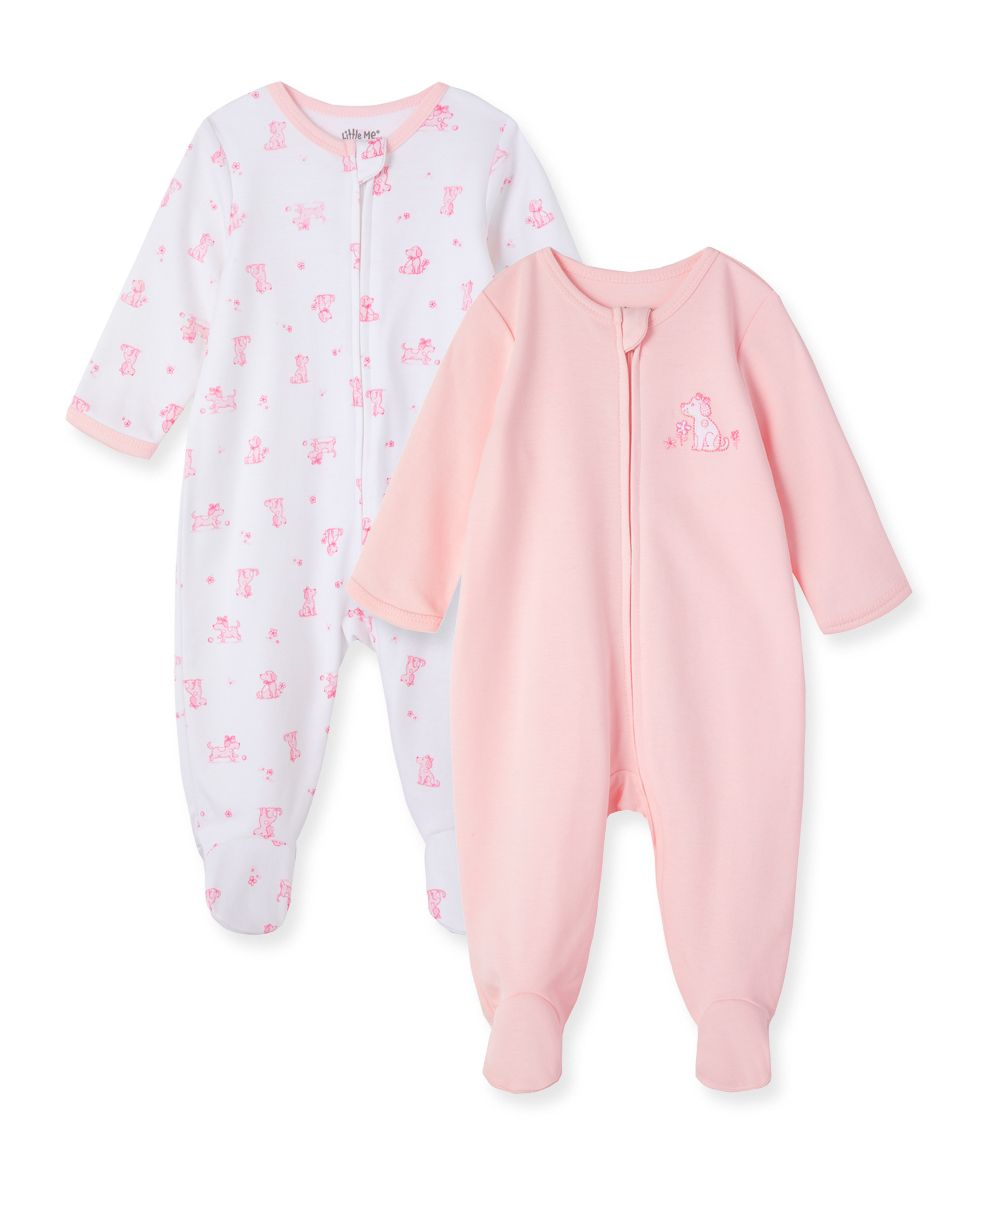 2Pc Pink Doggie Footie